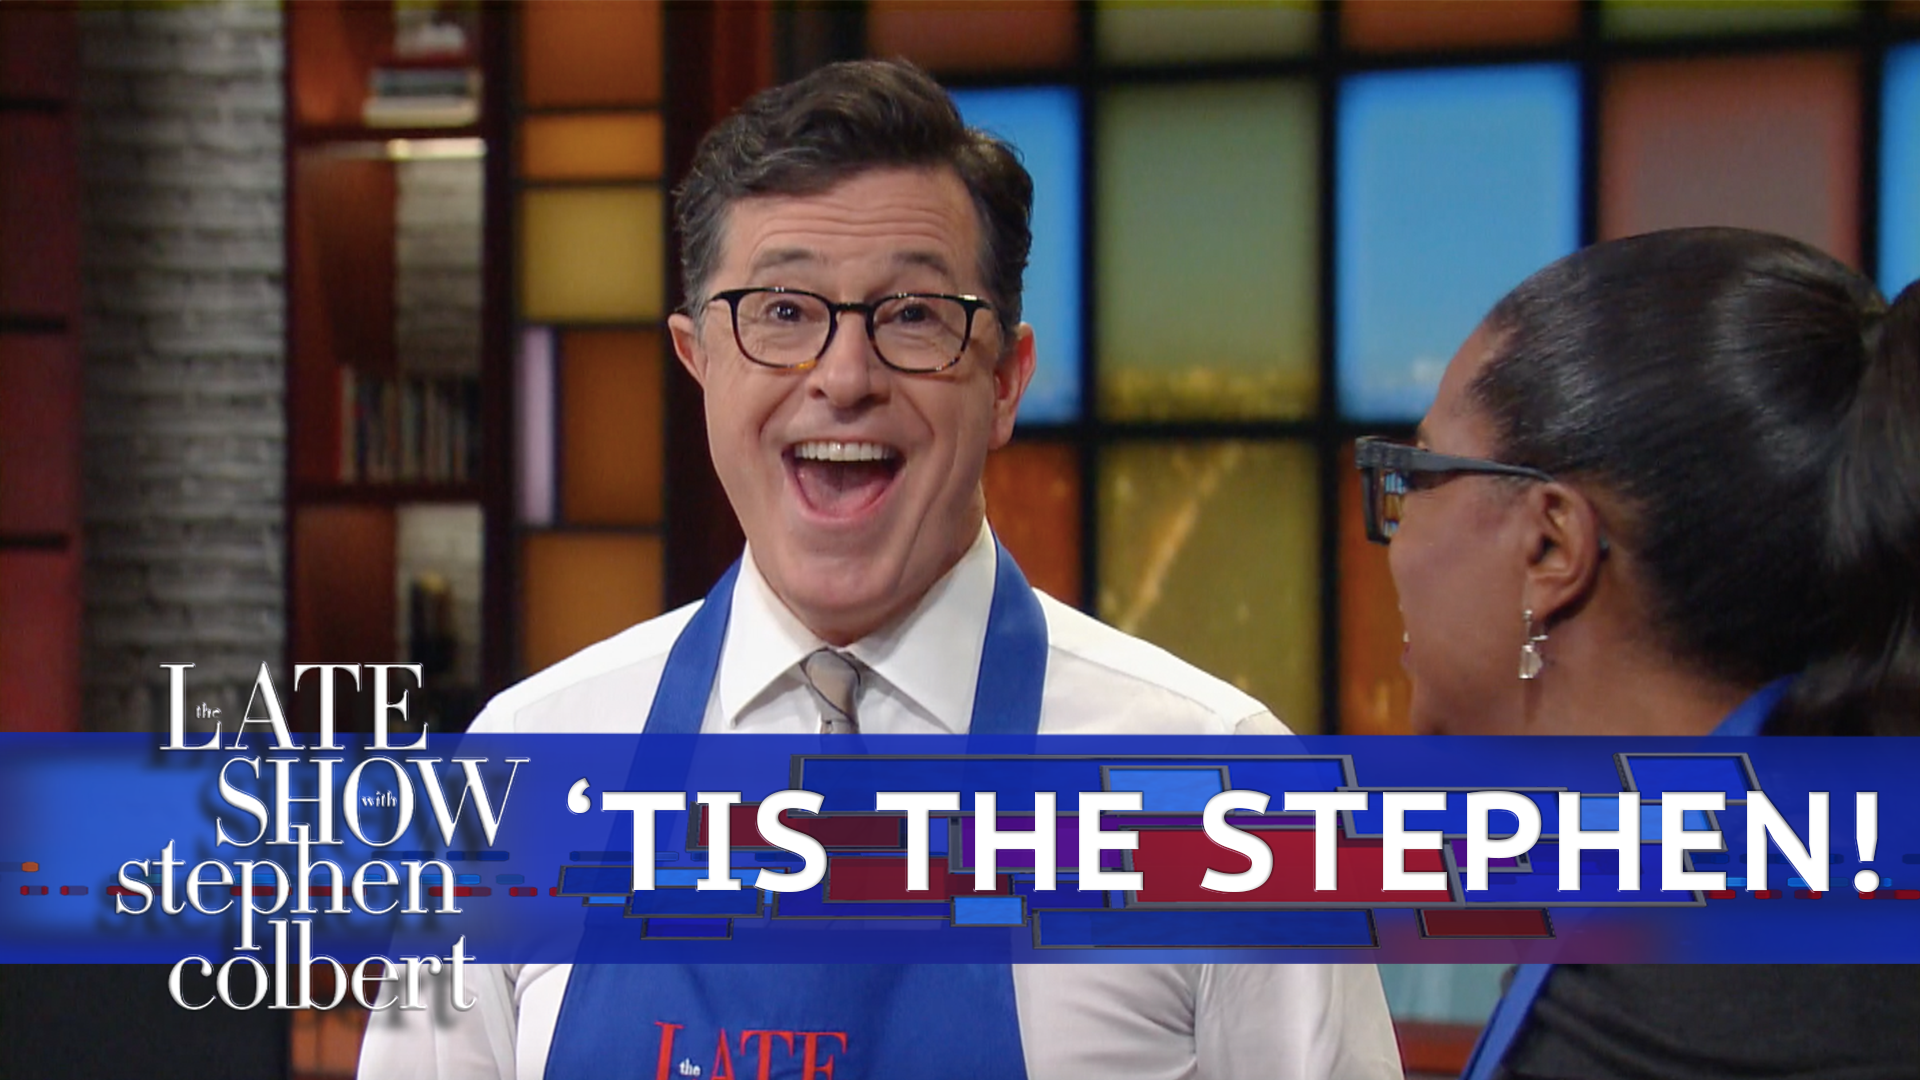 Now you can binge-watch a whole year of the Late Show in just 4 minutes! https://t.co/y8i0qVbekm